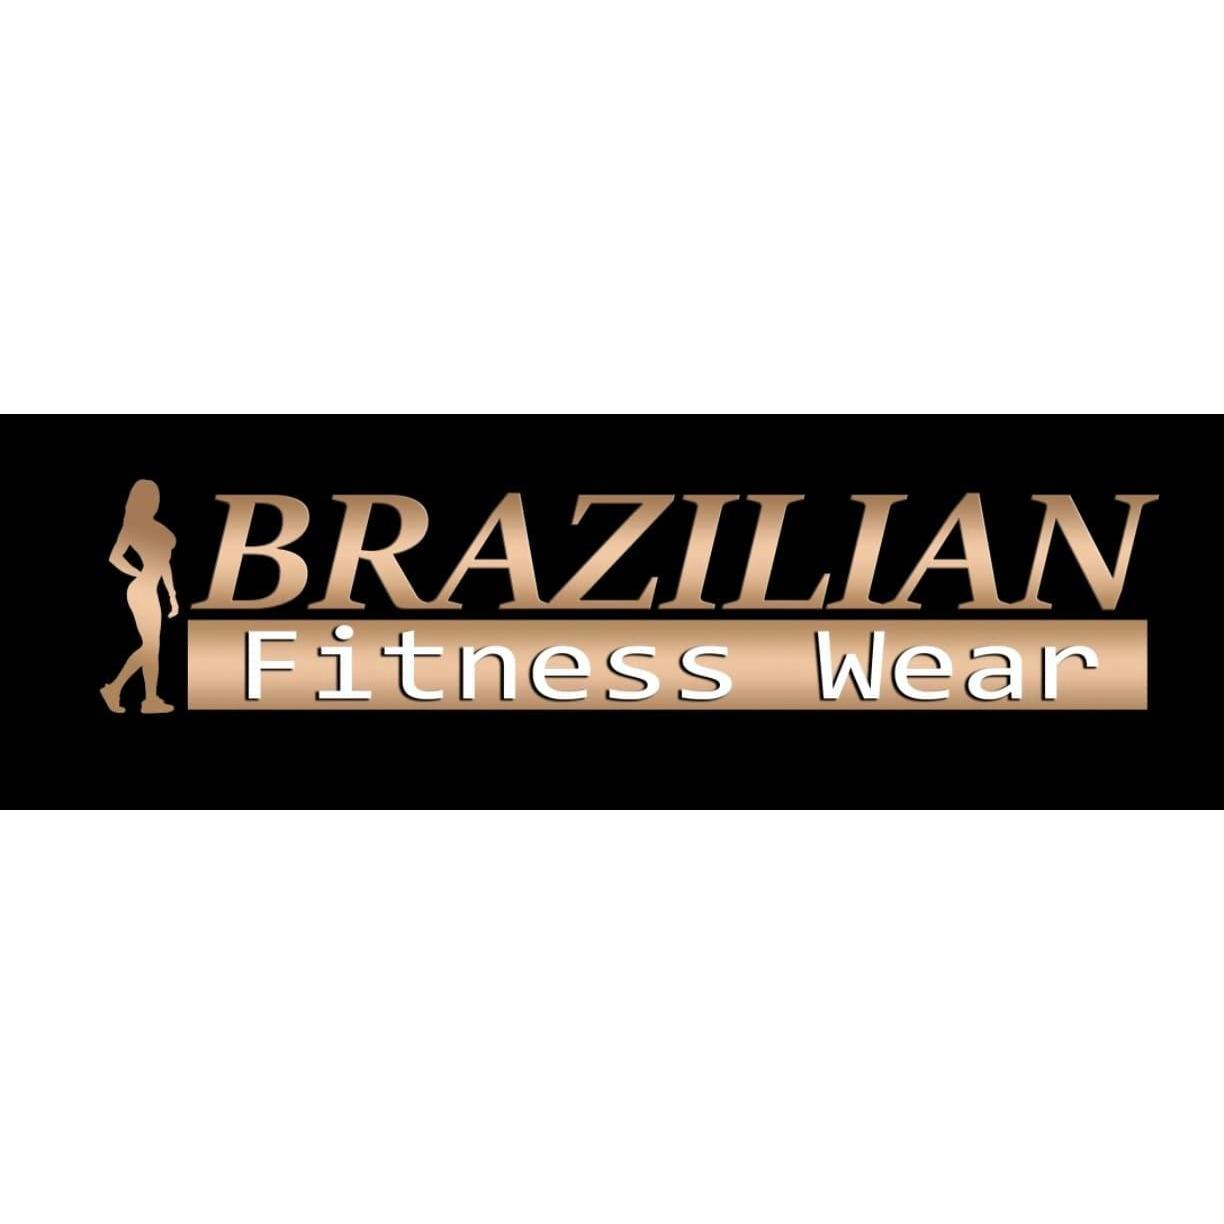 Brazilian Fitnesswear - Enfield, London EN3 6AA - 07473 006305 | ShowMeLocal.com